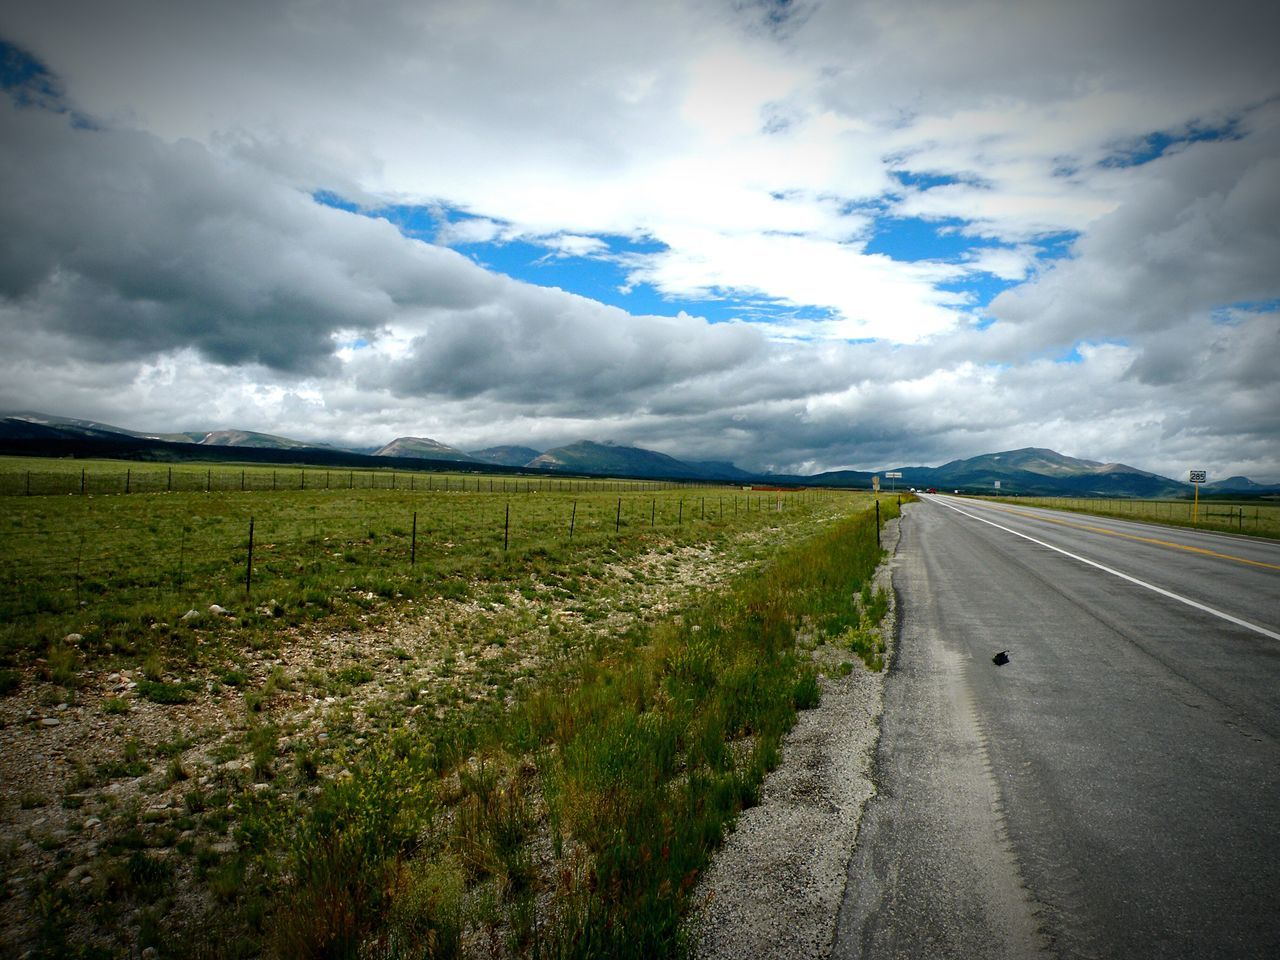 On The Road The Road Less Traveled Unknown Finding Self Beautiful Colorado Day Solo Road Trip Breathing Space